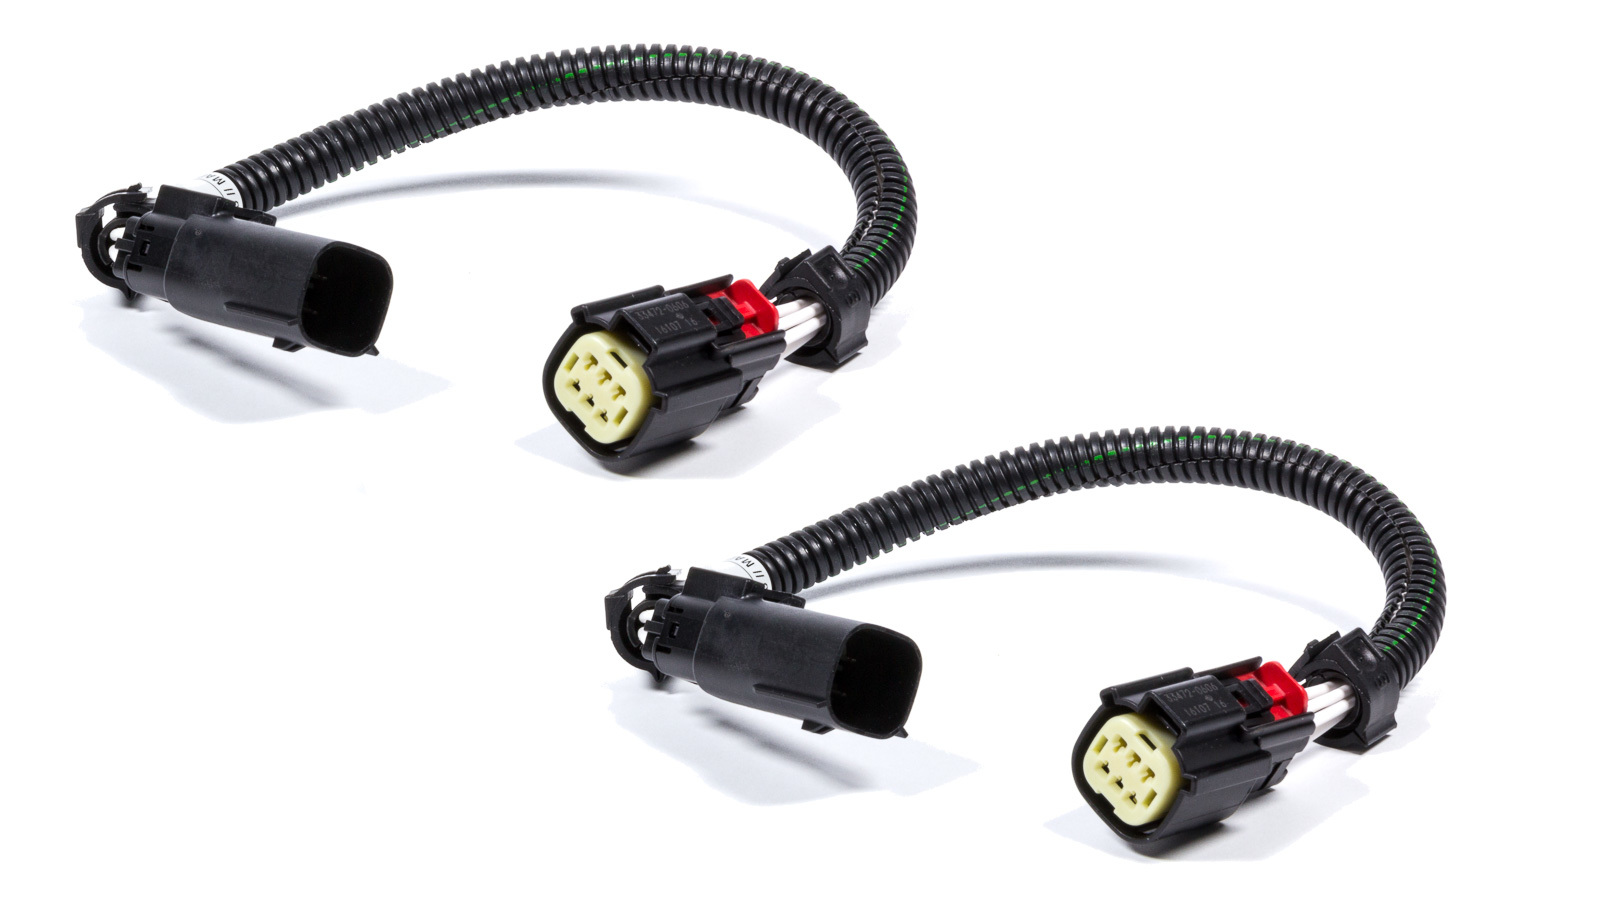 BBK Performance 1119 Oxygen Sensor Extension, Front, 12 in Long, Ford Coyote, Ford Mustang 2015-16, Pair